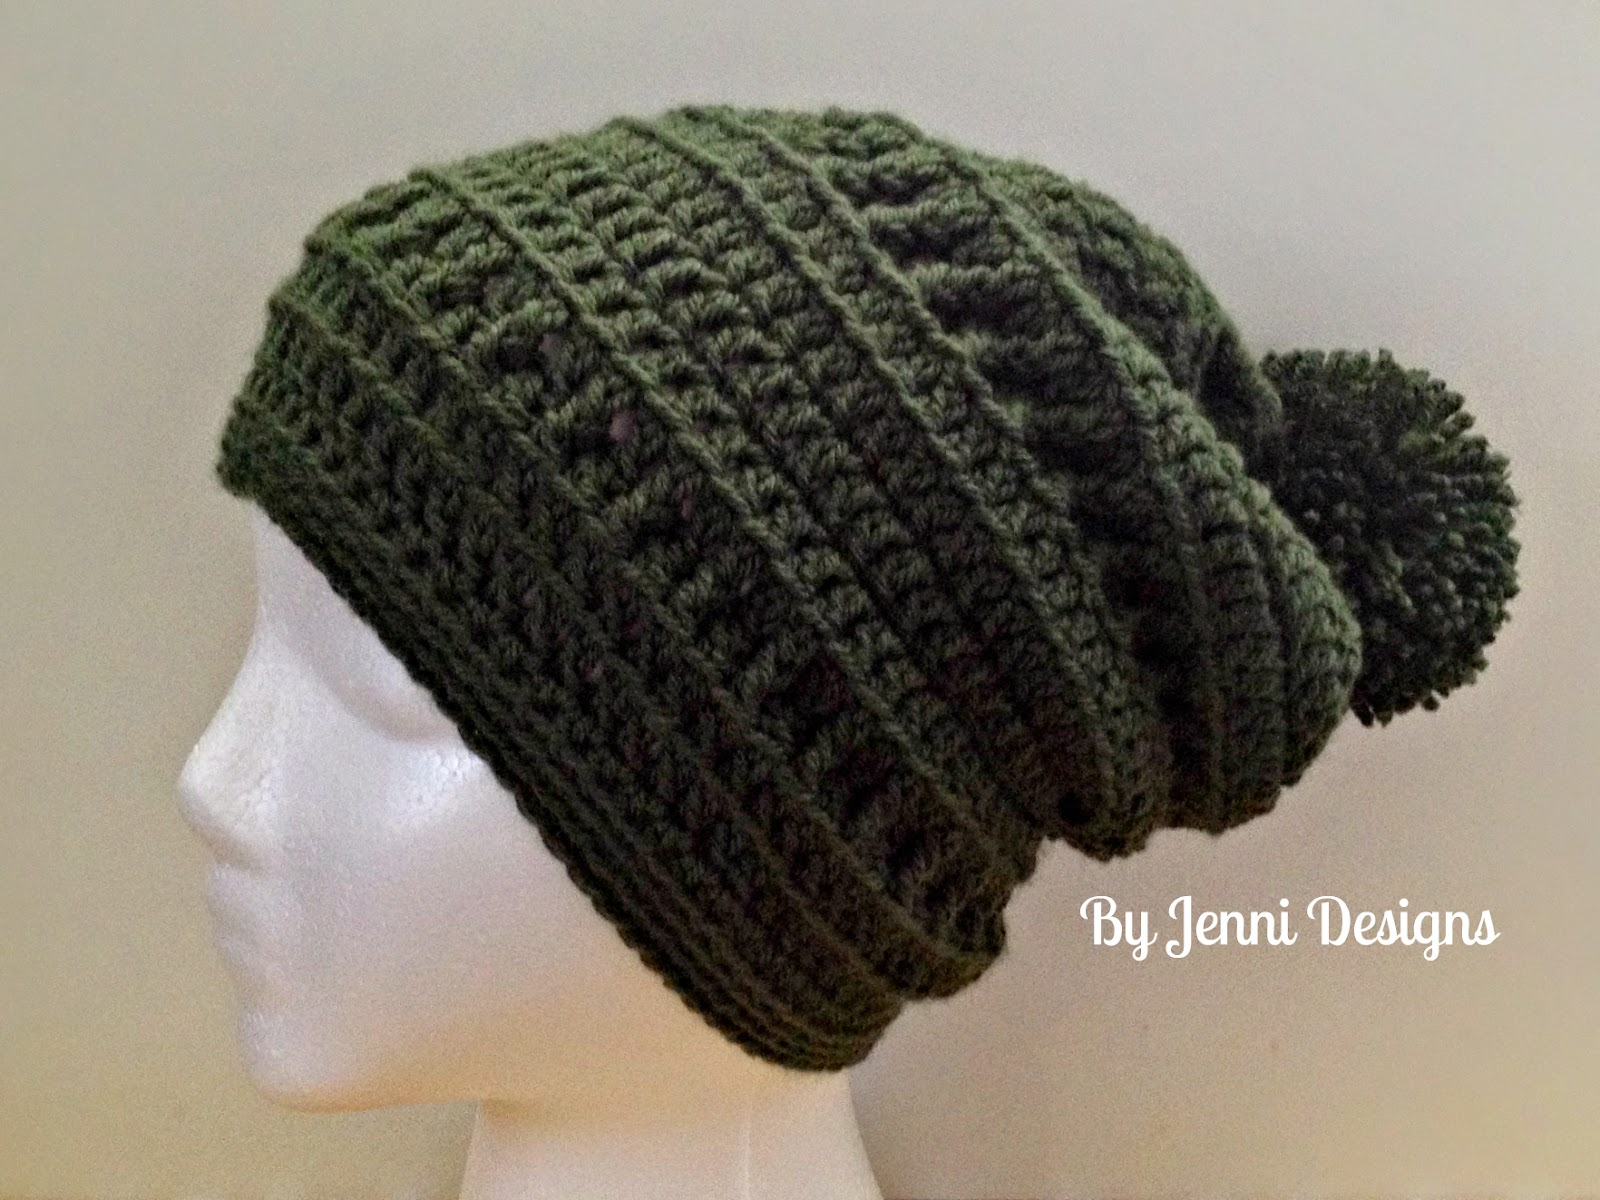 By jenni designs slouchy textured beanie